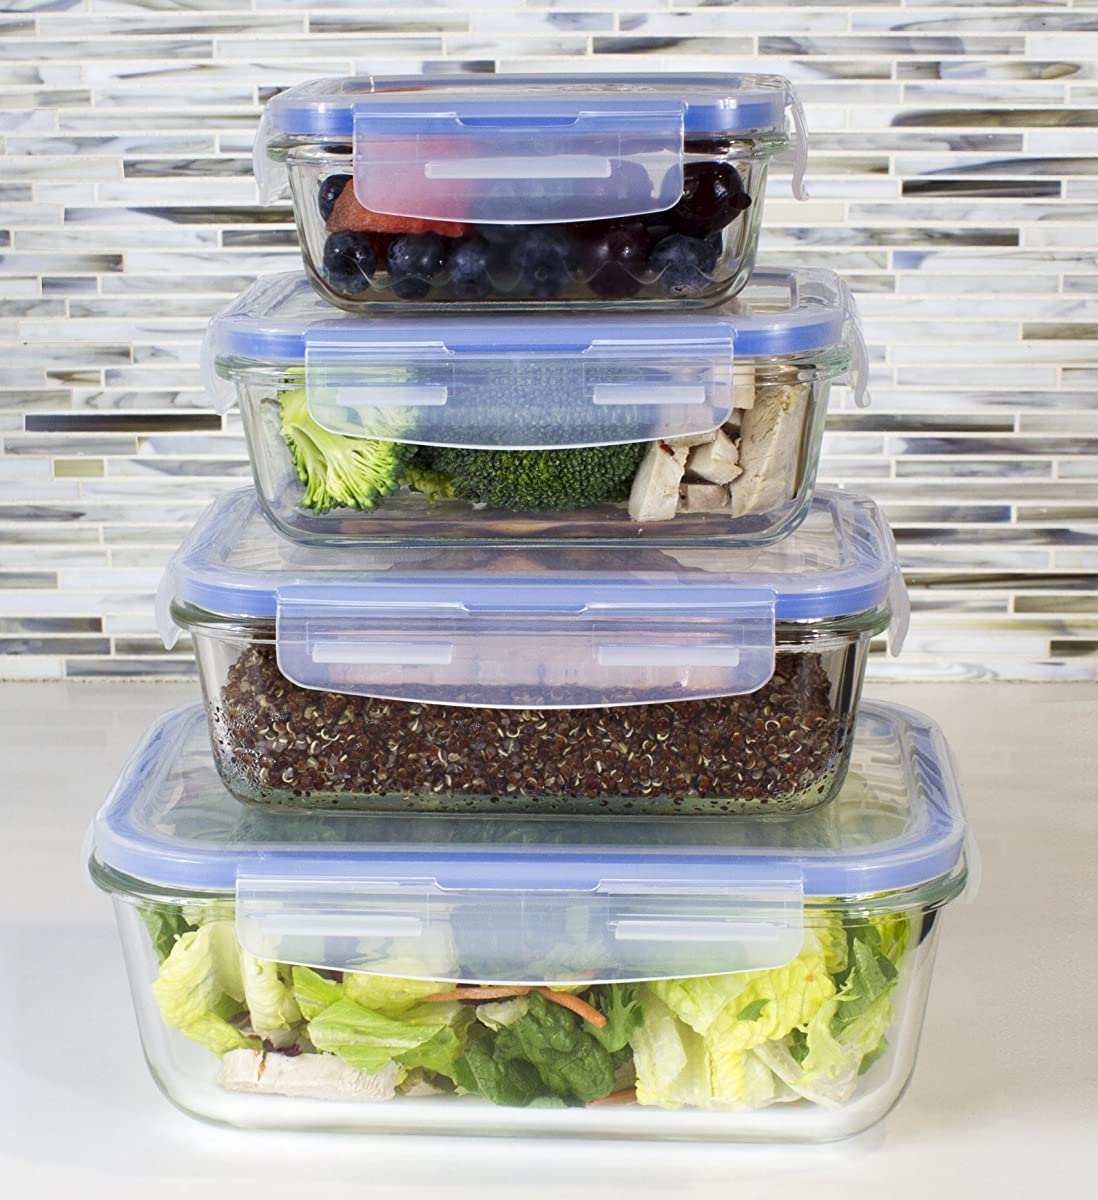 [Premium 4 Sets] Glass Meal Prep Food Storage Container with Snap Locking Lid, Glass Meal Prep Containers BPA-Free, Microwave, Oven, Freezer, Dishwasher Safe (62 Oz, 28 Oz, 19 Oz, 11 Oz.)